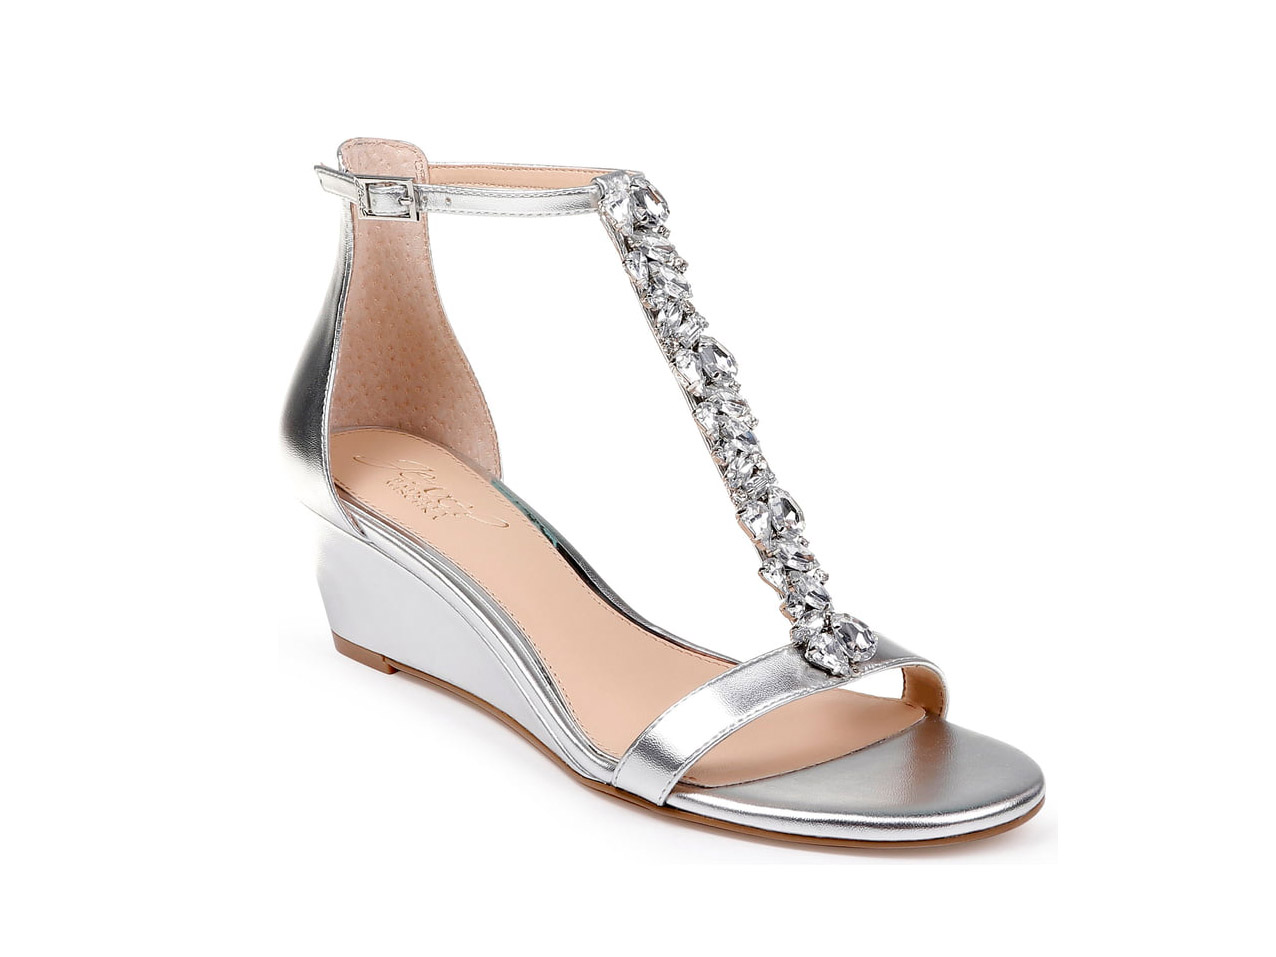 Jewel Badgley Mischka Darrell Embellished Wedge Sandal